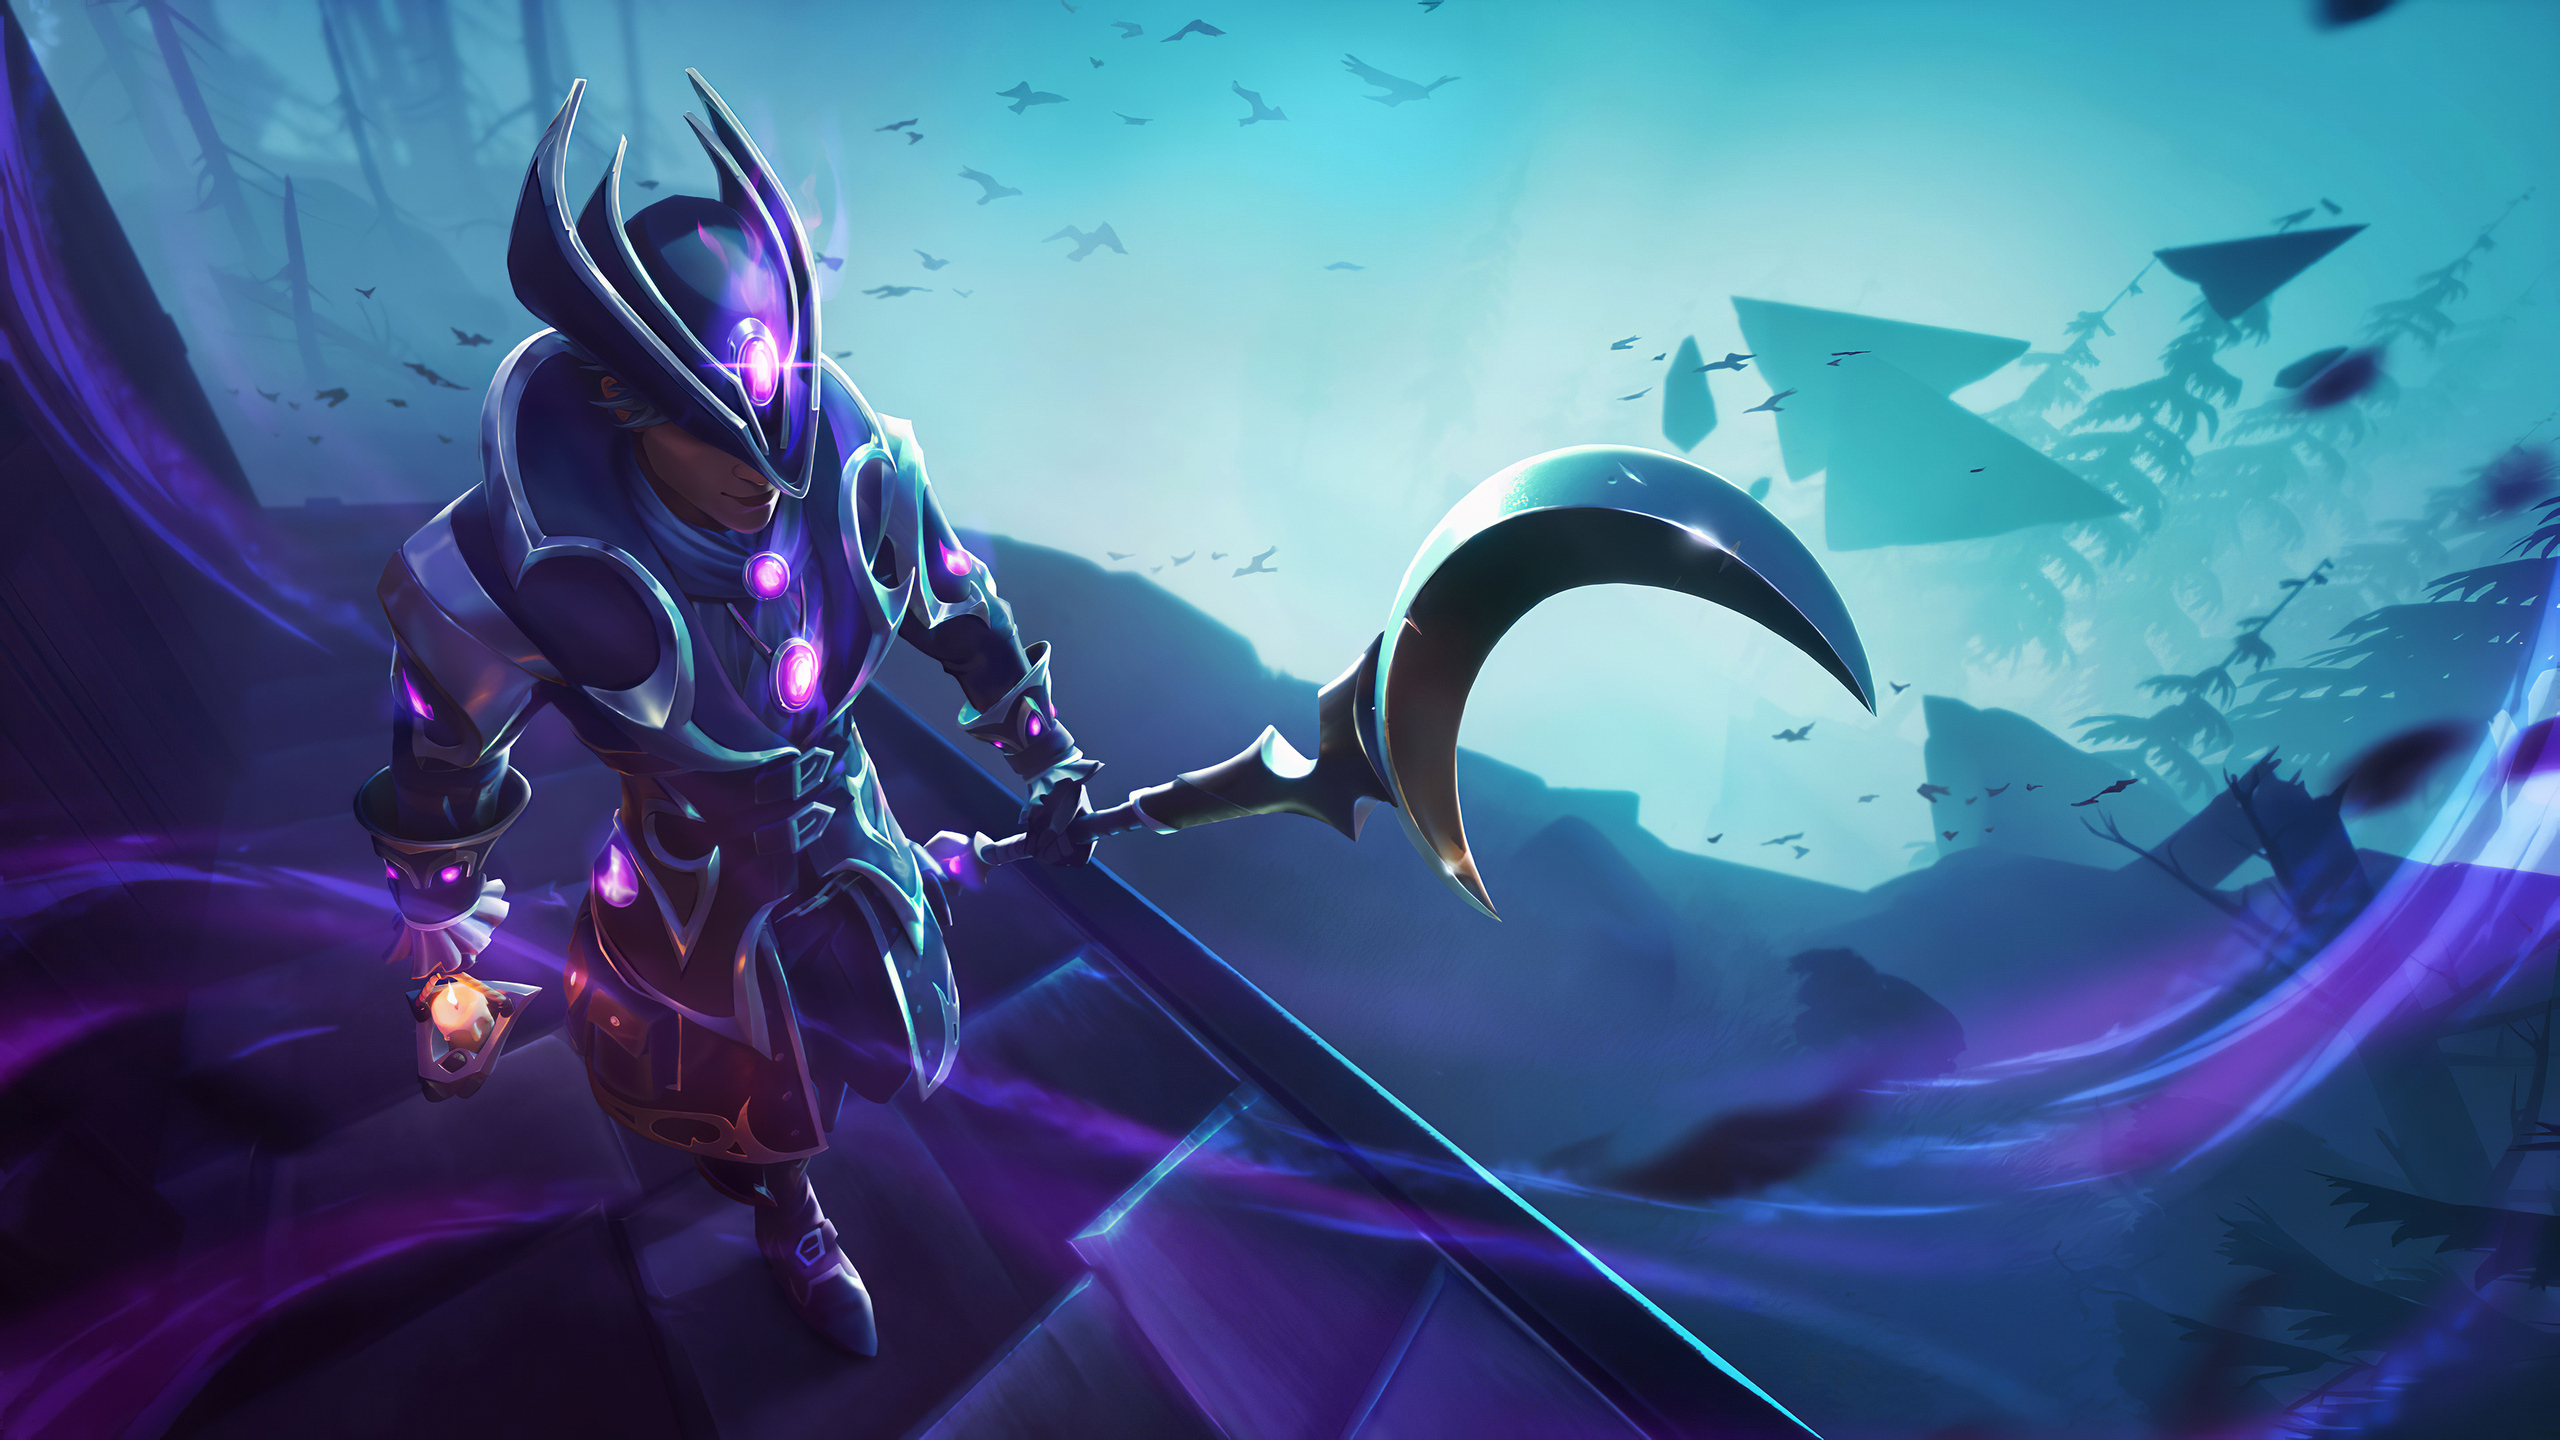 2560x1440 Dauntless Epic Games 1440p Resolution Hd 4k Wallpapers Images Backgrounds Photos And Pictures